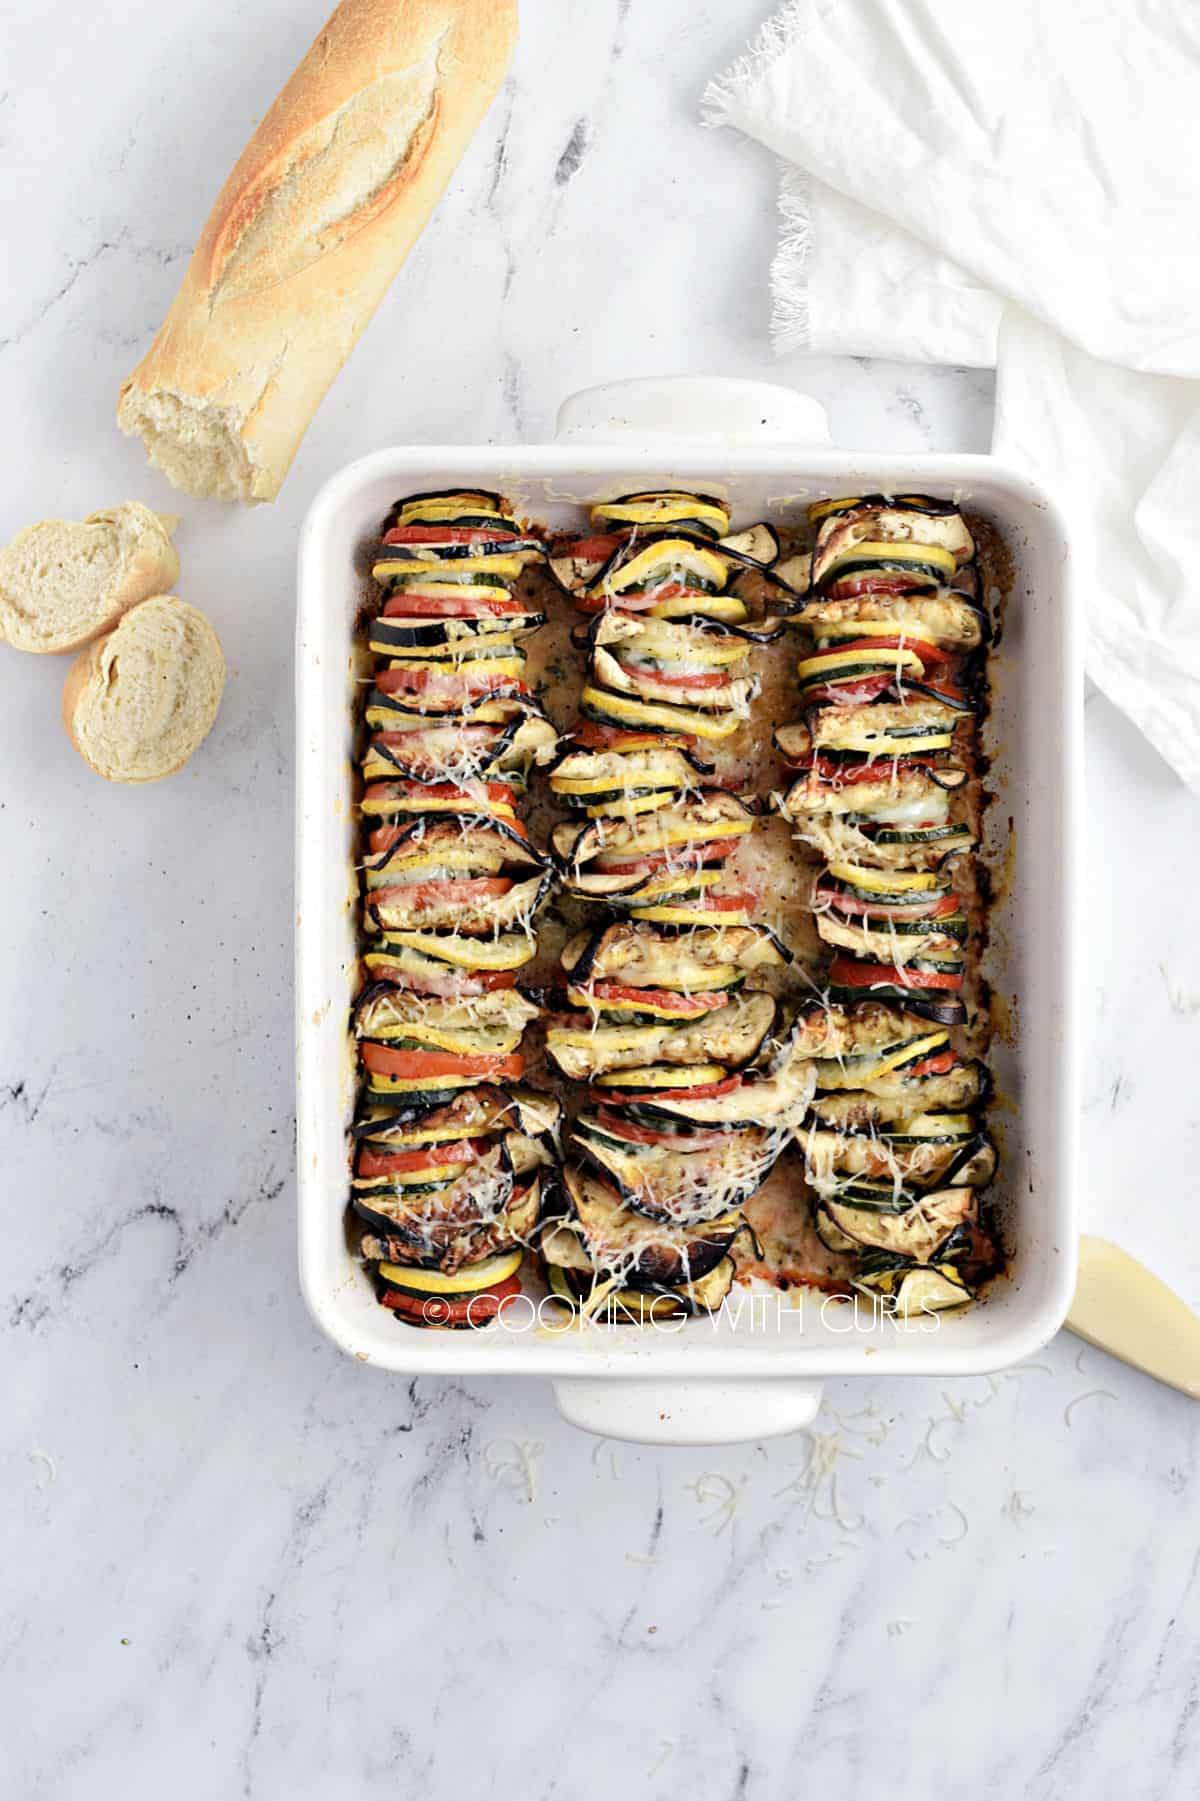 Vegetable Tian Recipe in a white baking dish with a loaf of bread in the background.